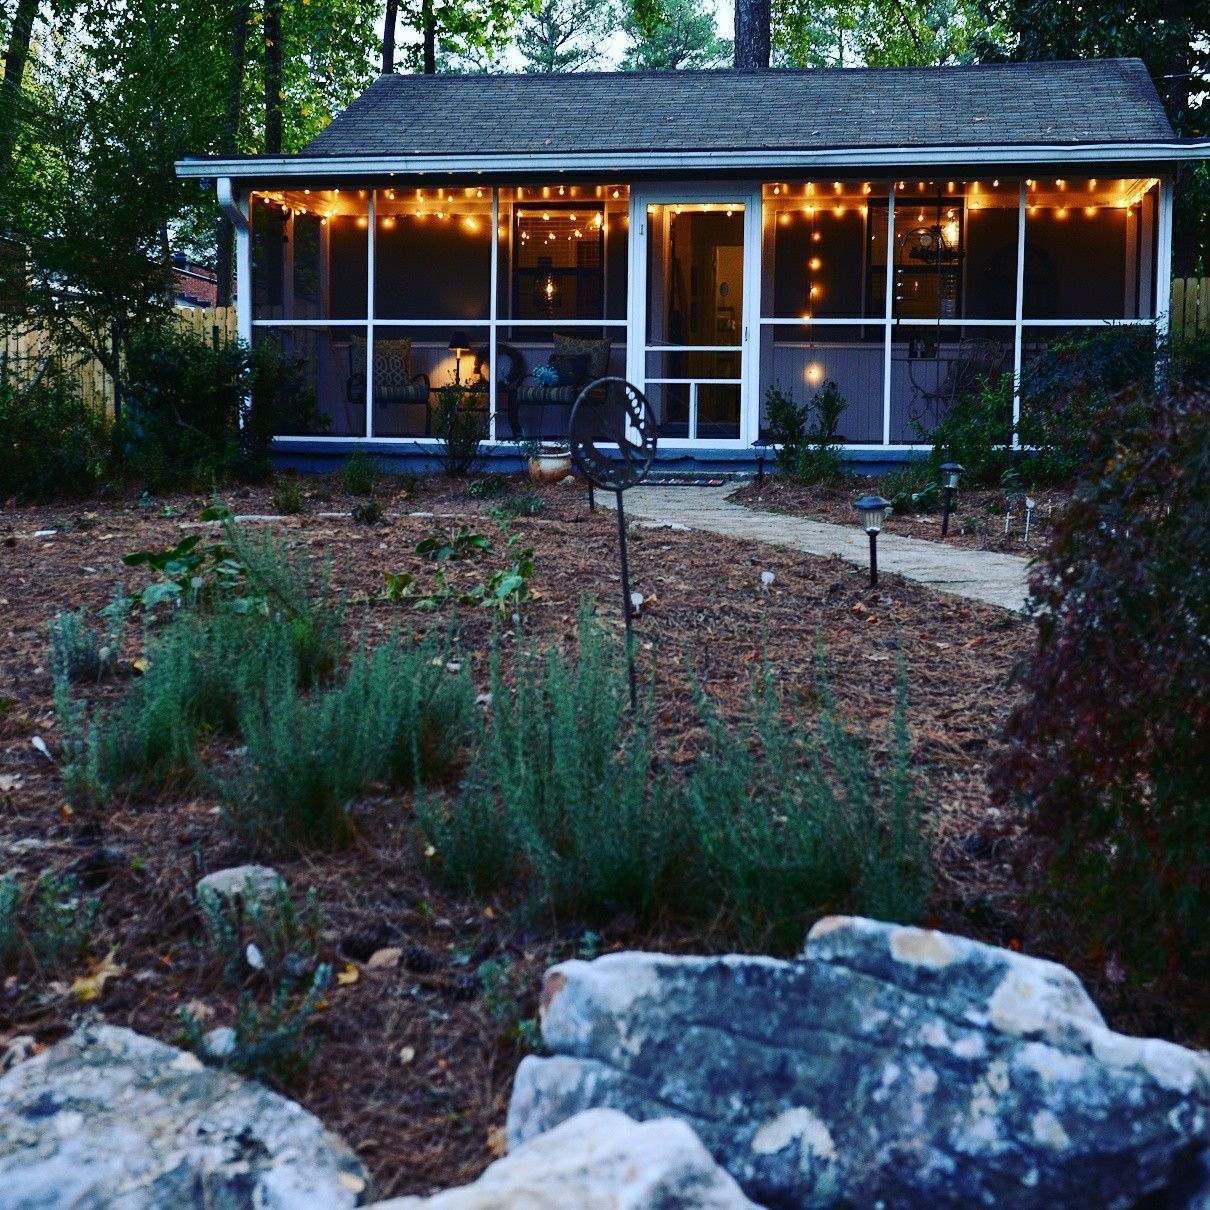 Twinkle lights come on at dusk, adding to the cottage